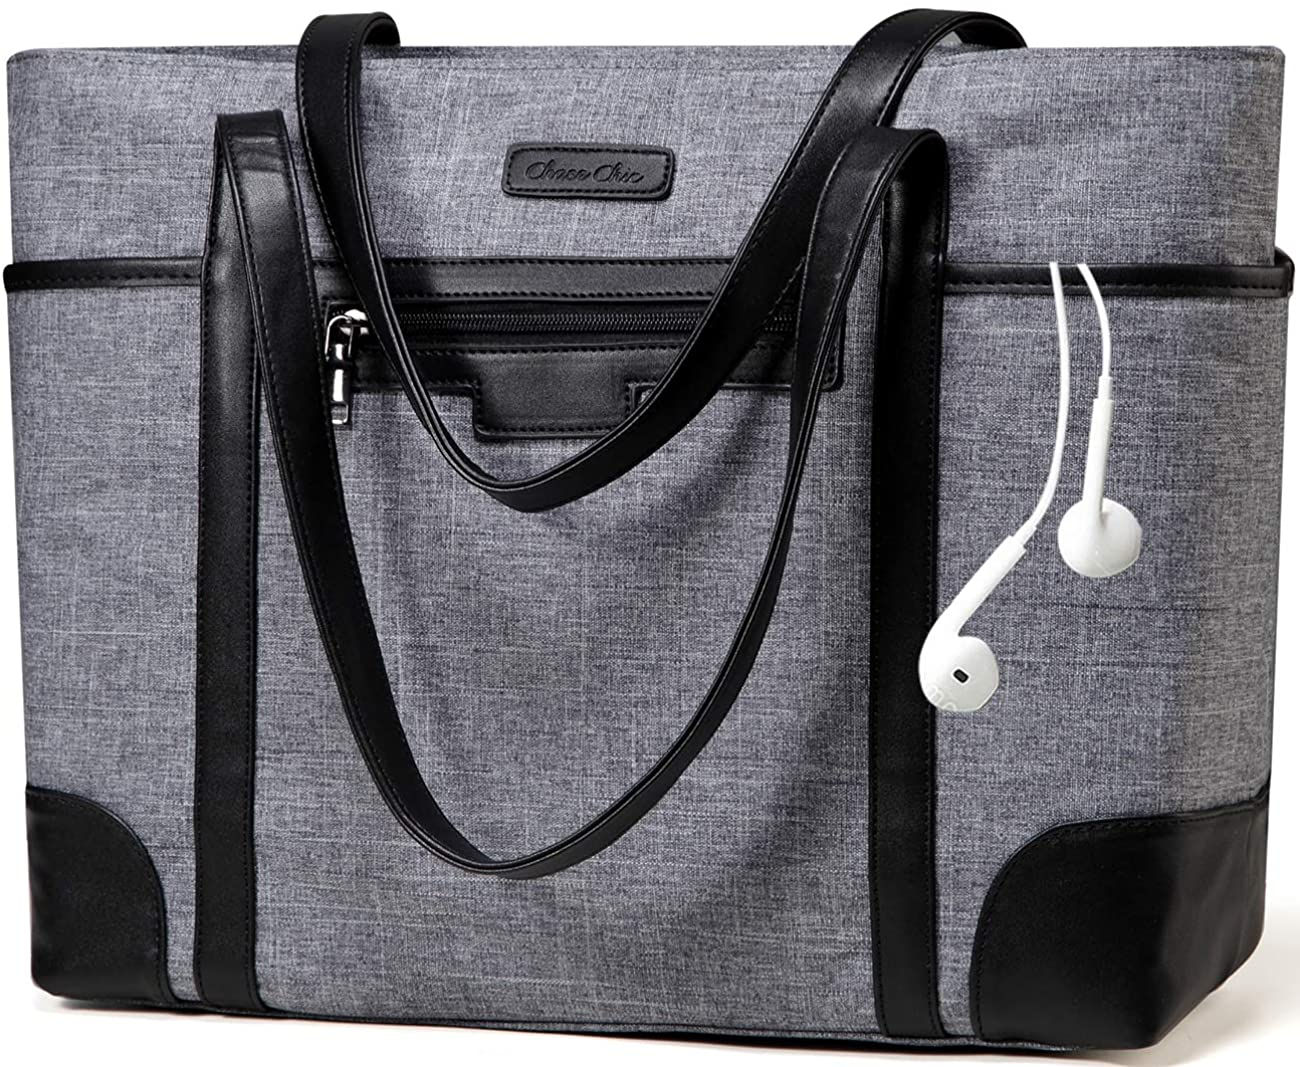 Laptop Bag for Women,Chasechic Water-resistant Classic 15.6in Work Shopping Tote